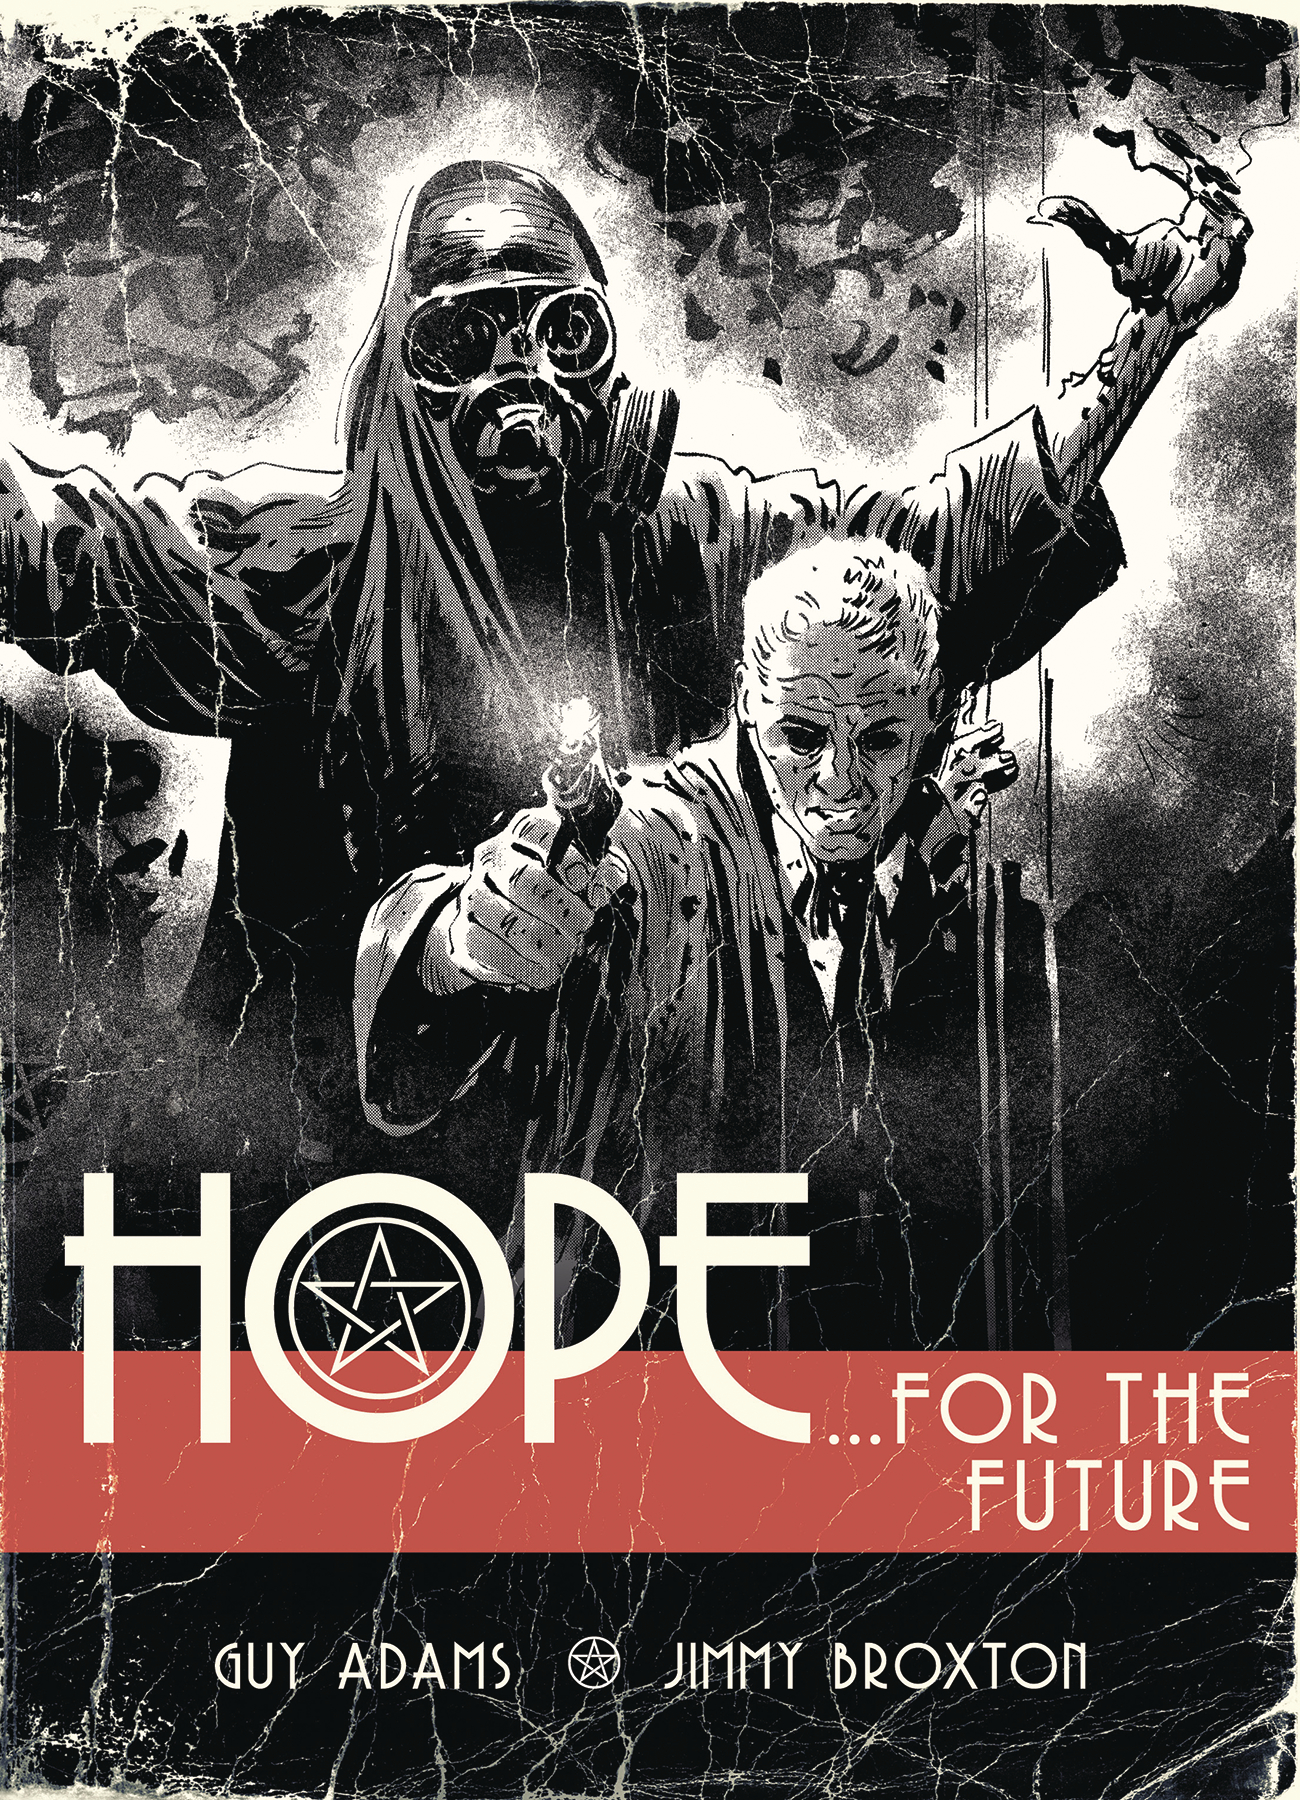 HOPE (Guy ADAMS & Jimmy BROXTON) TP